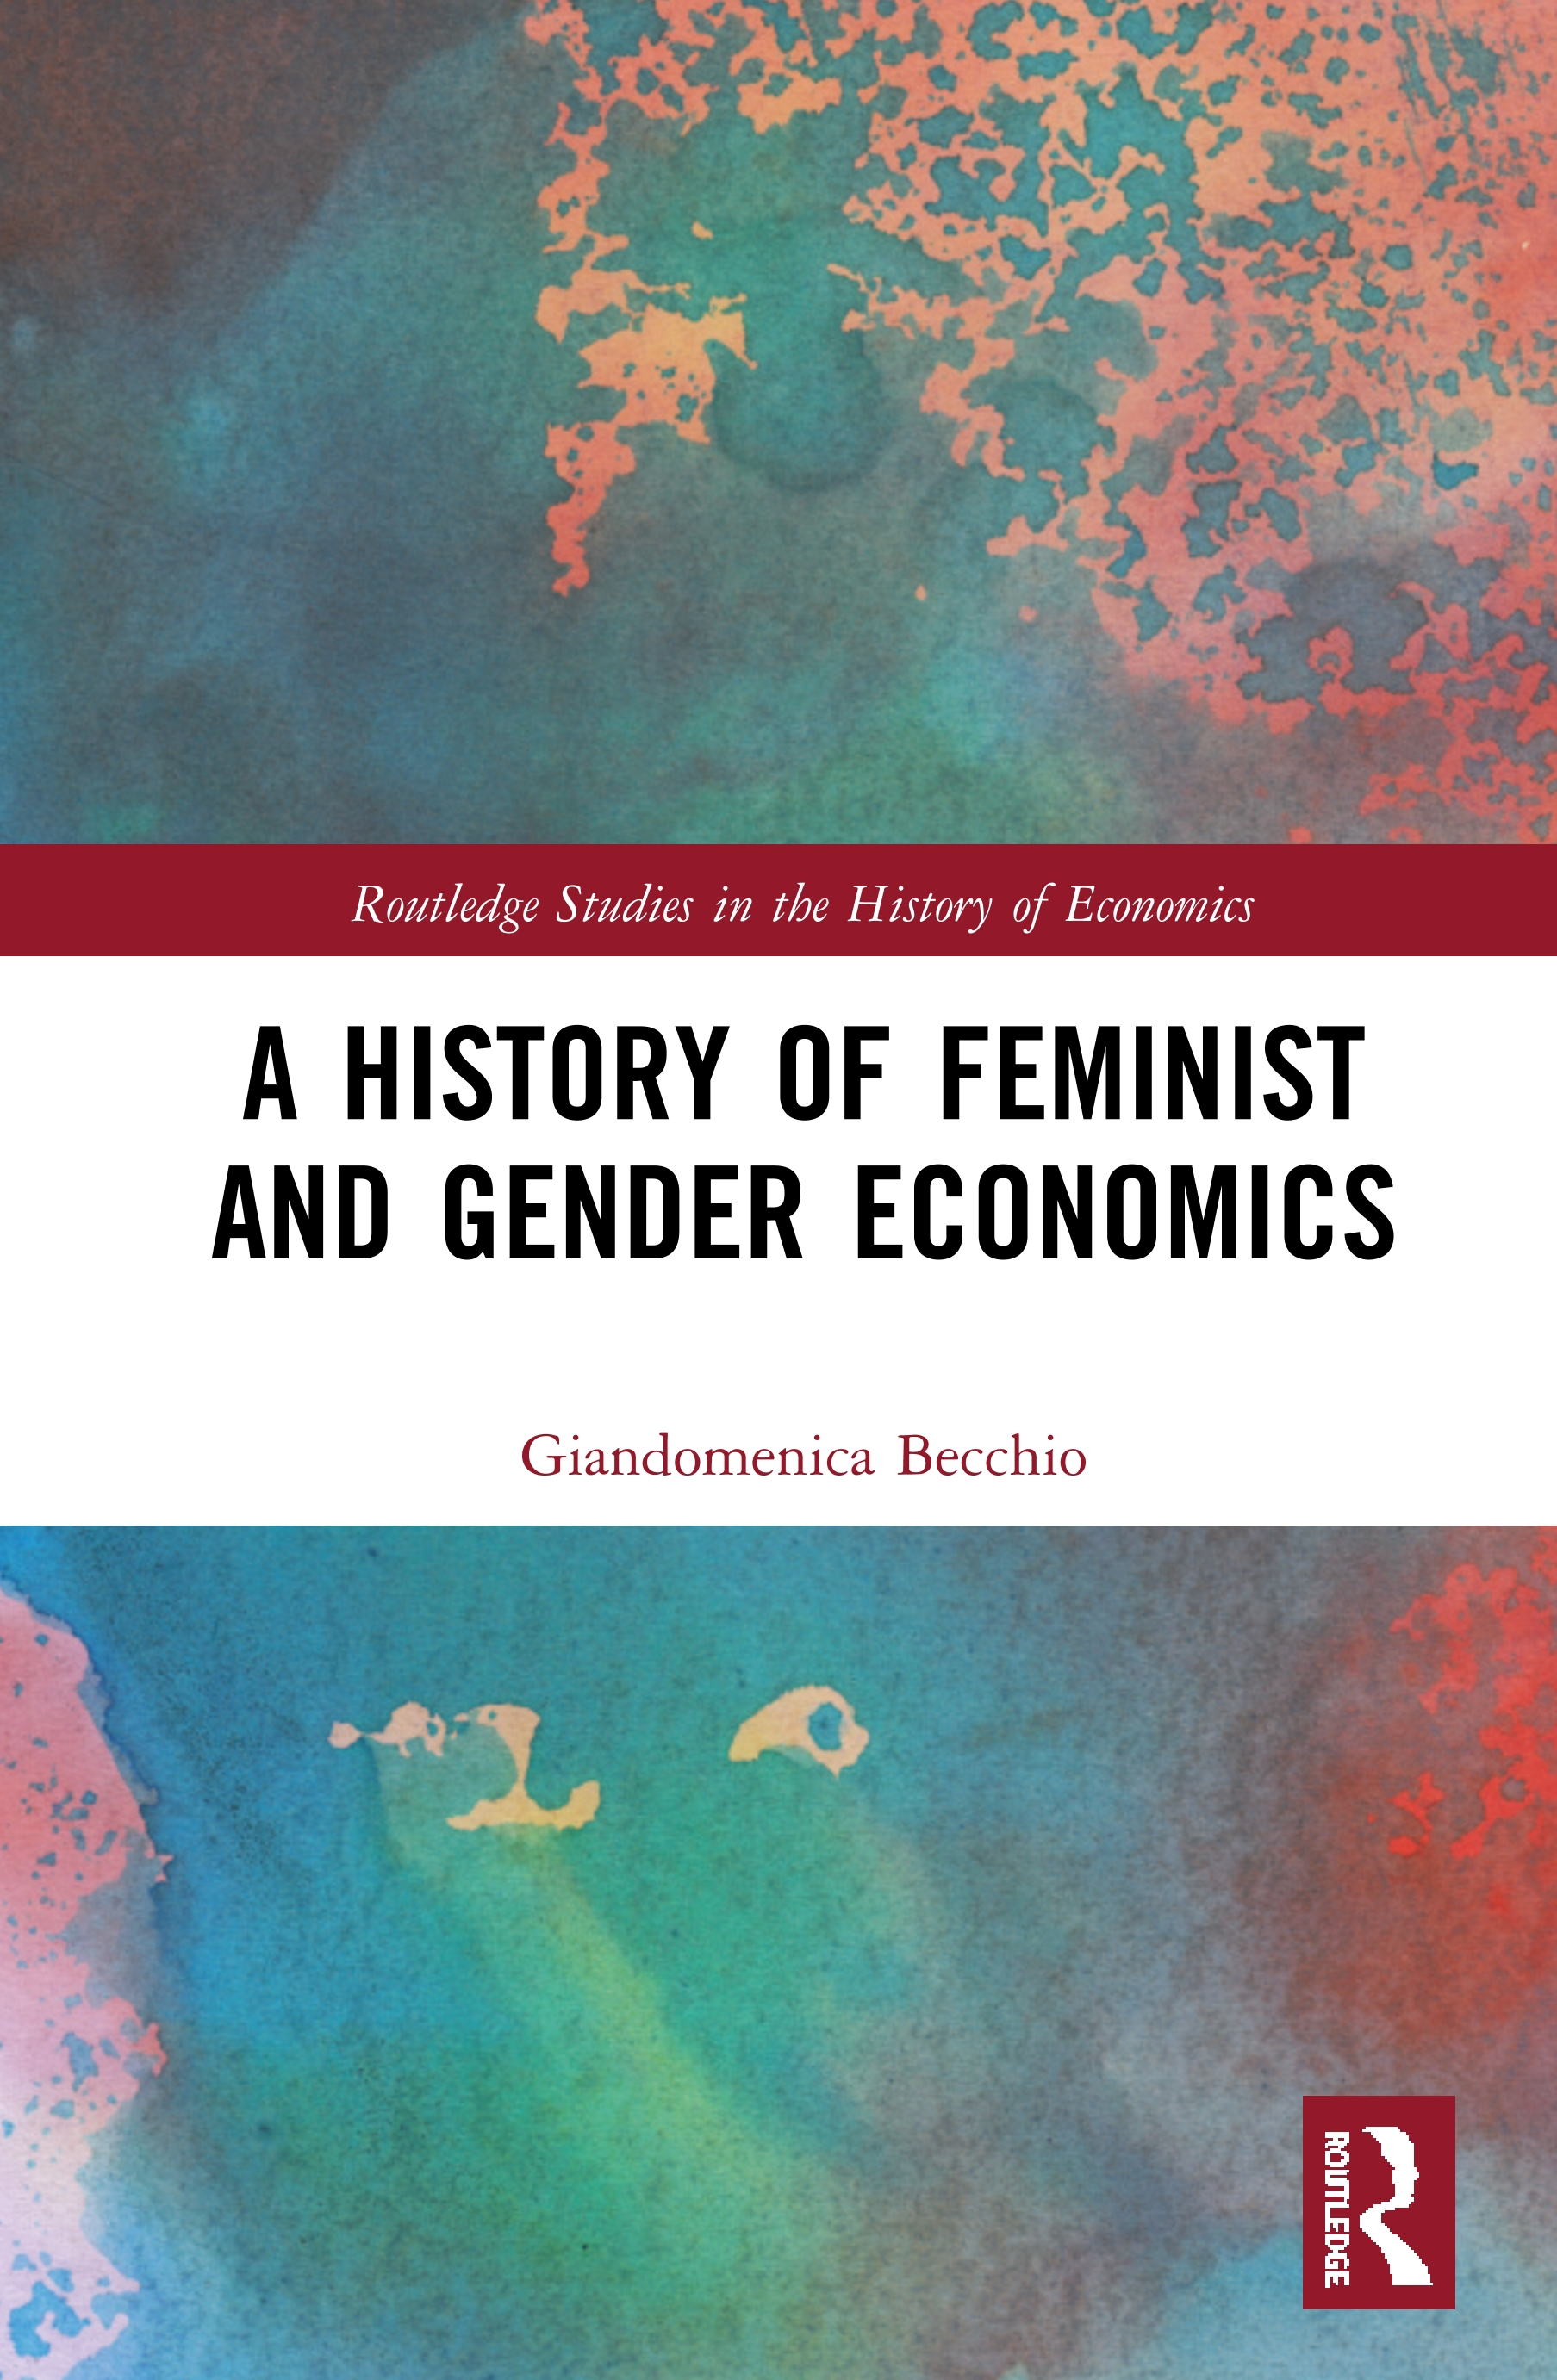 A History of Feminist and Gender Economics book cover